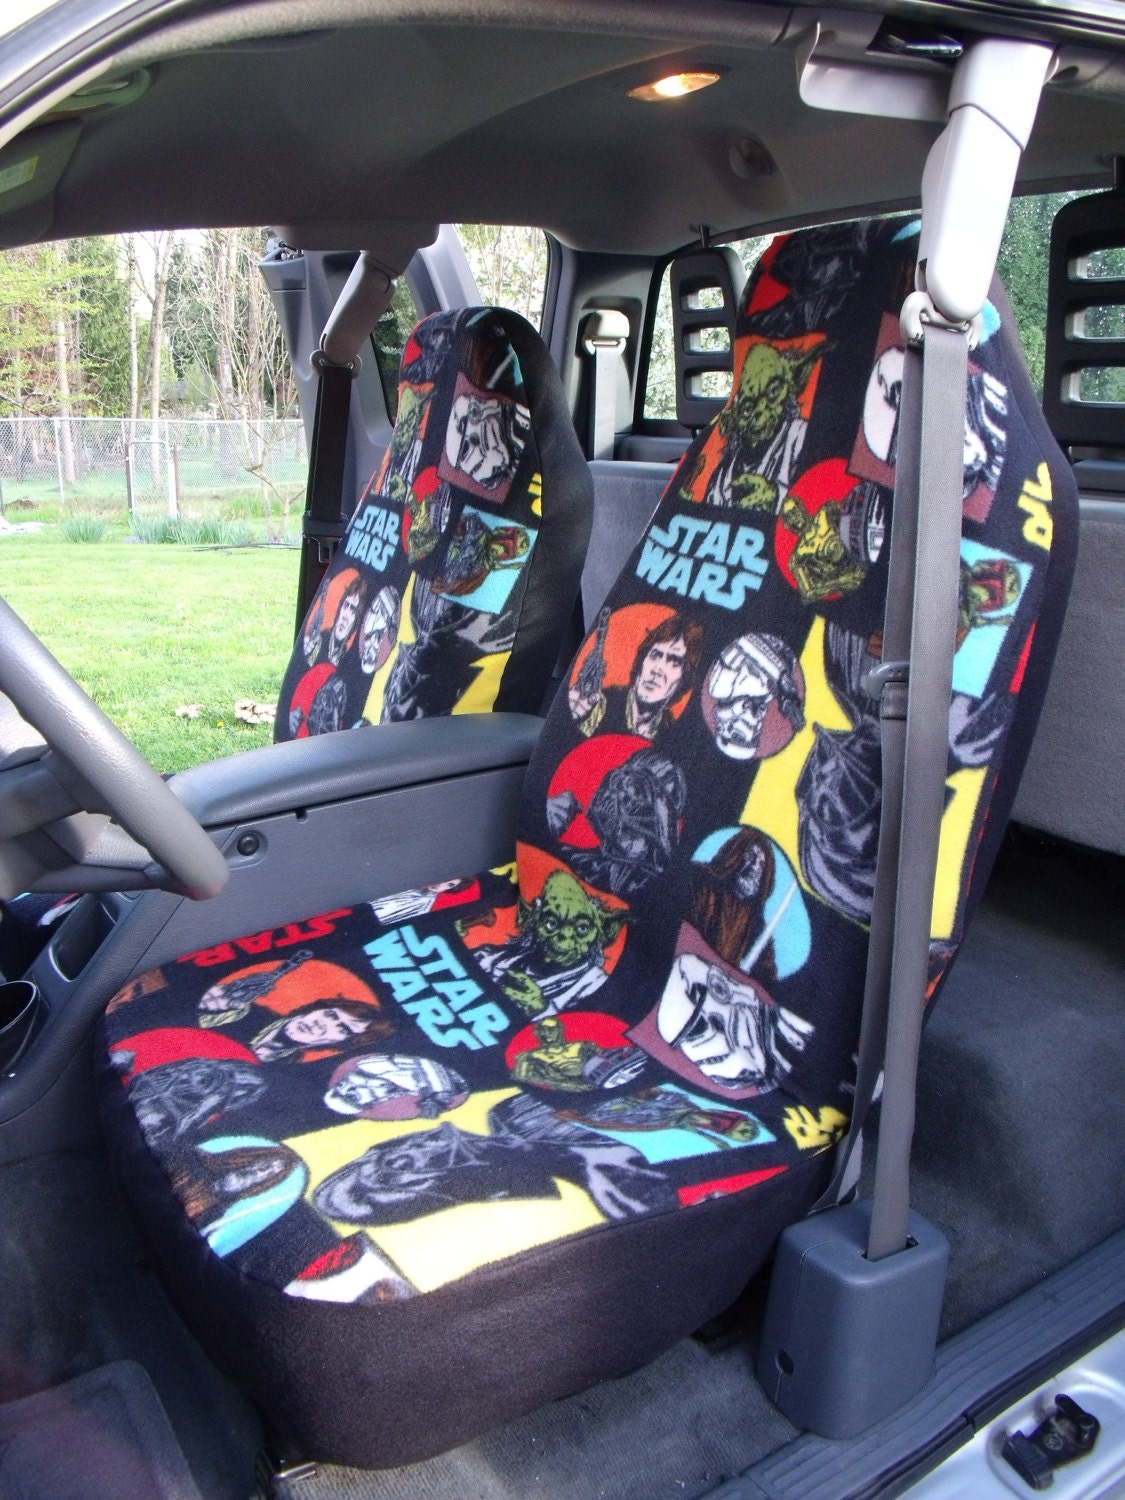 1 Set Of Star Wars Cartoon Characters Print Car Seat Covers